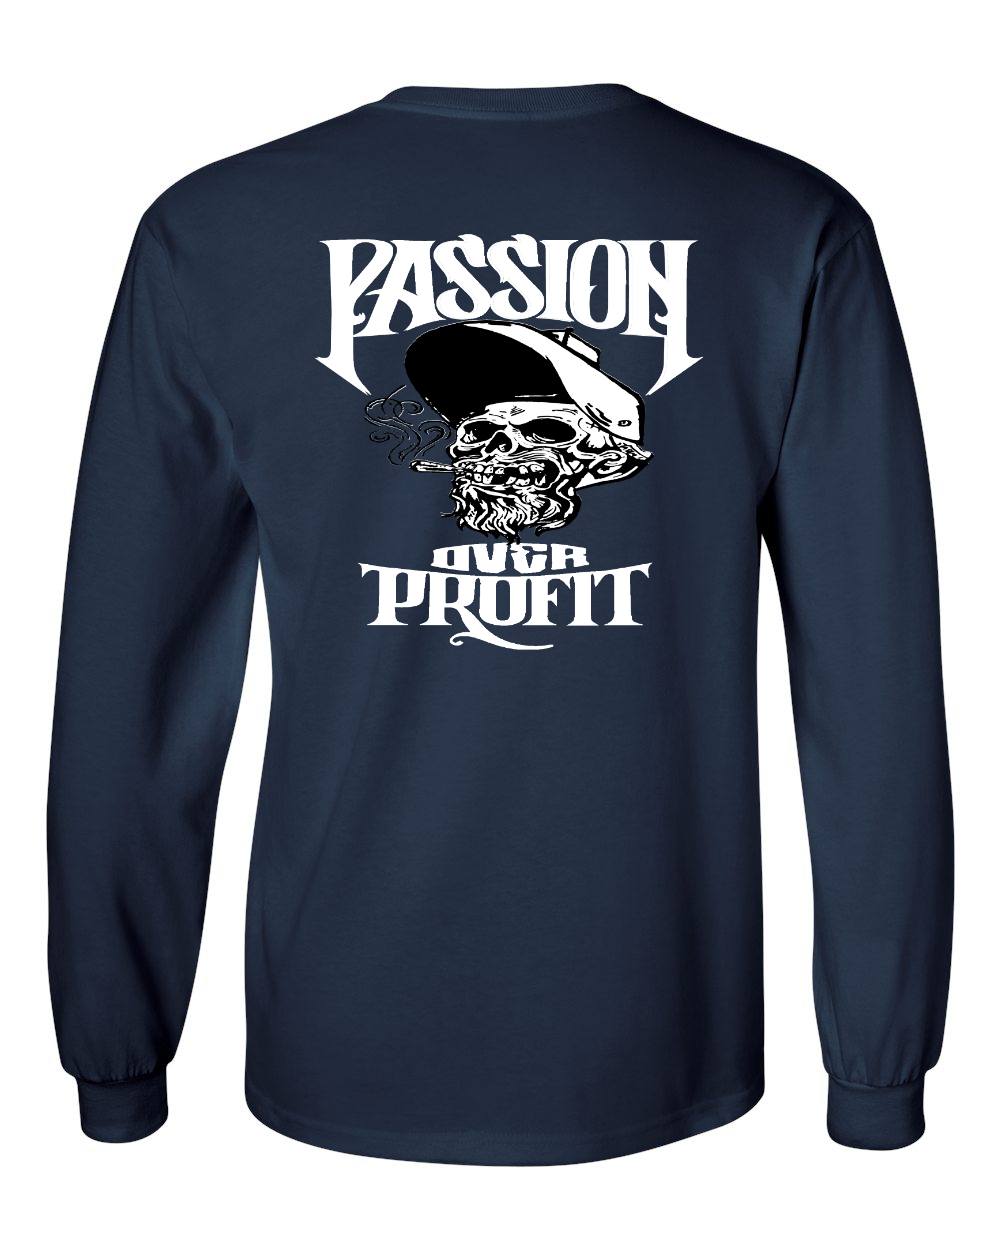 OG SDW - Passion Over Profit - White Print